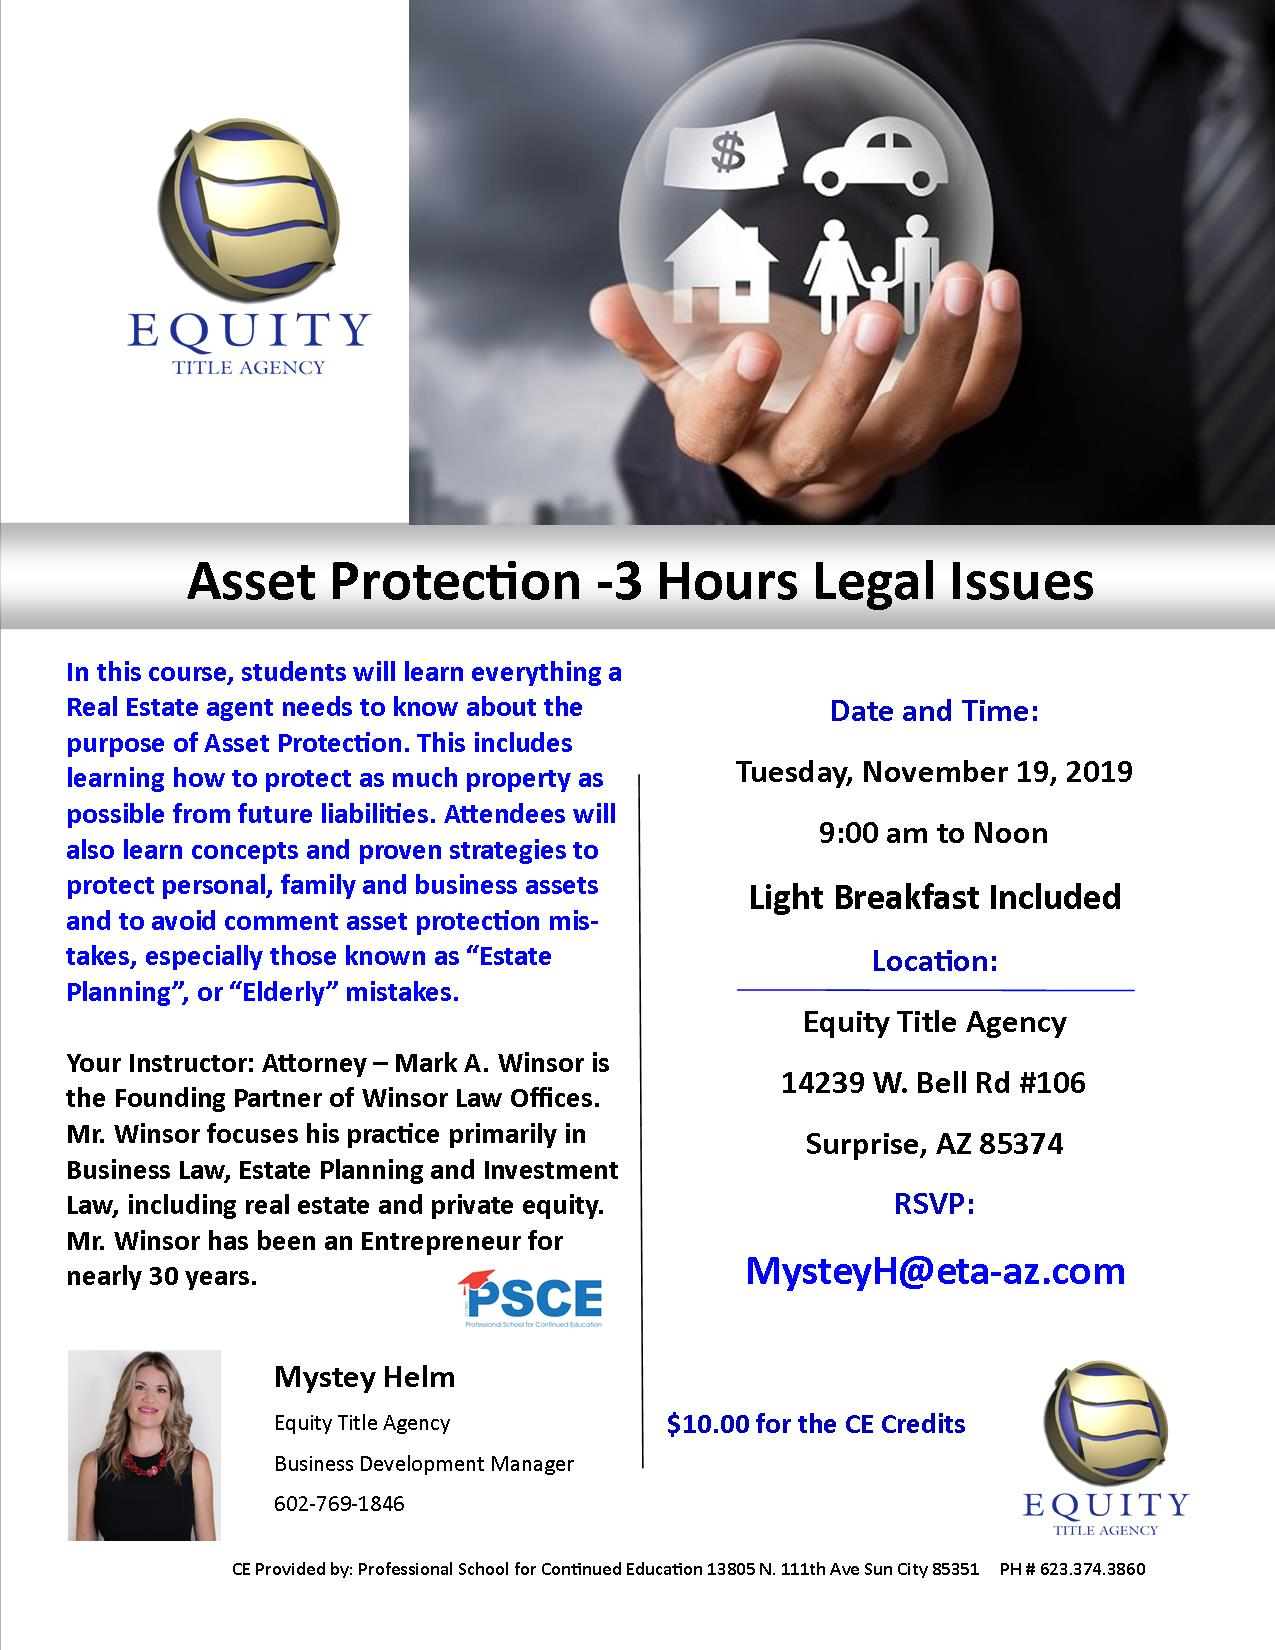 Asset Protection- 3 Hours legal issues CE